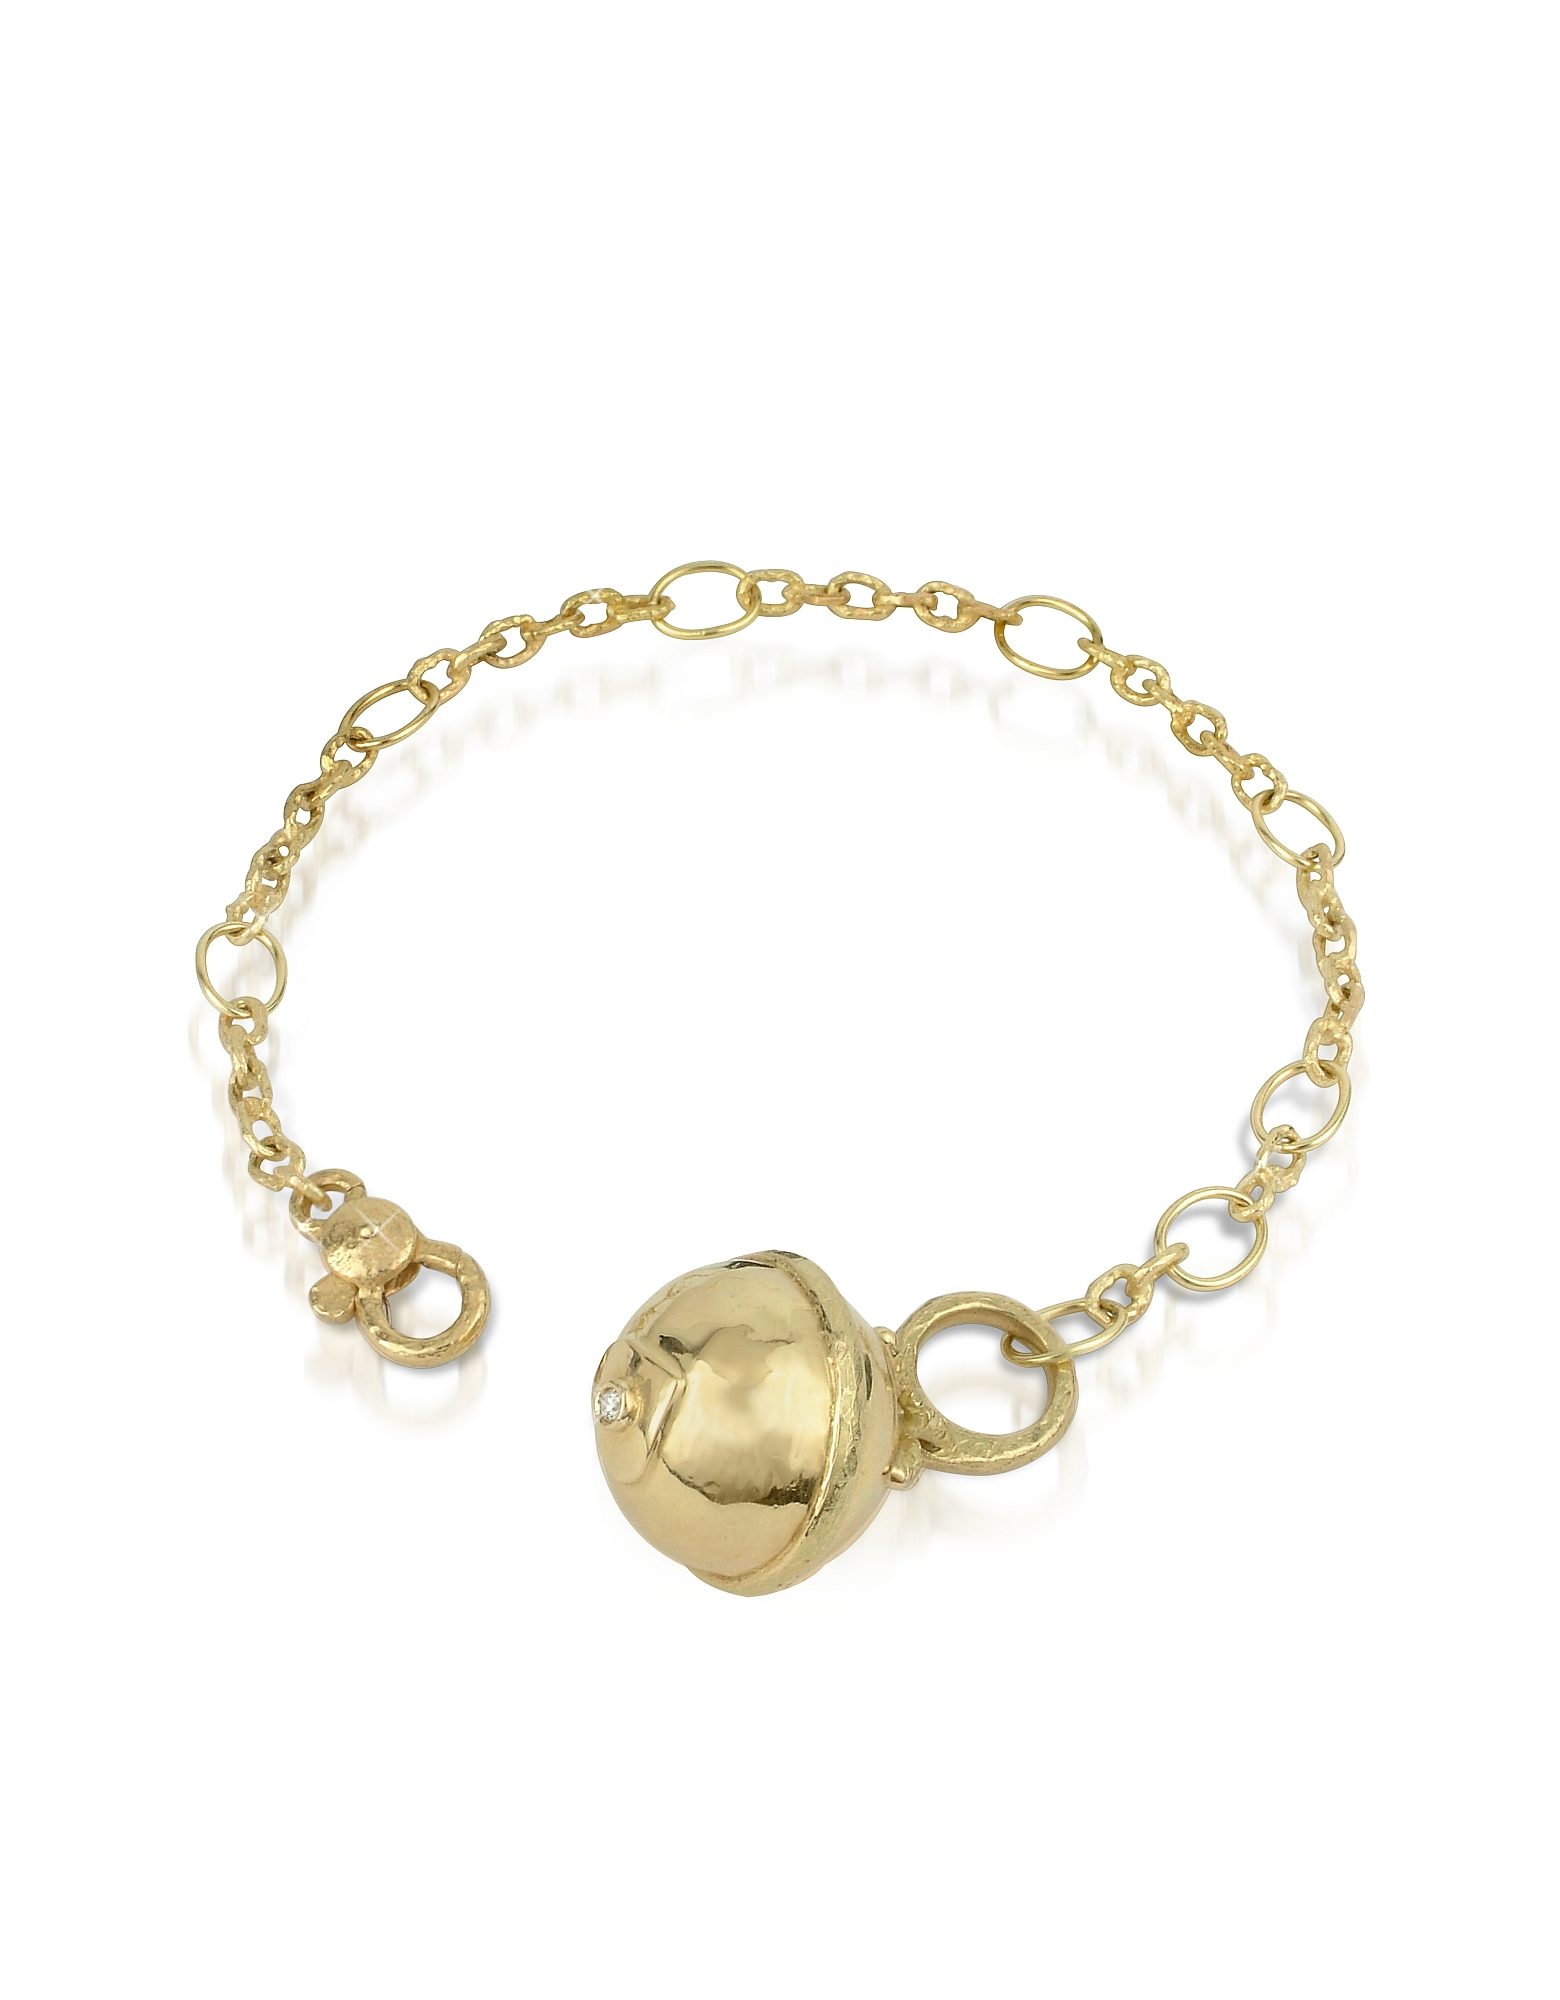 Torrini Bracelets, Ball - 18K Gold and Diamond Charm Bracelet